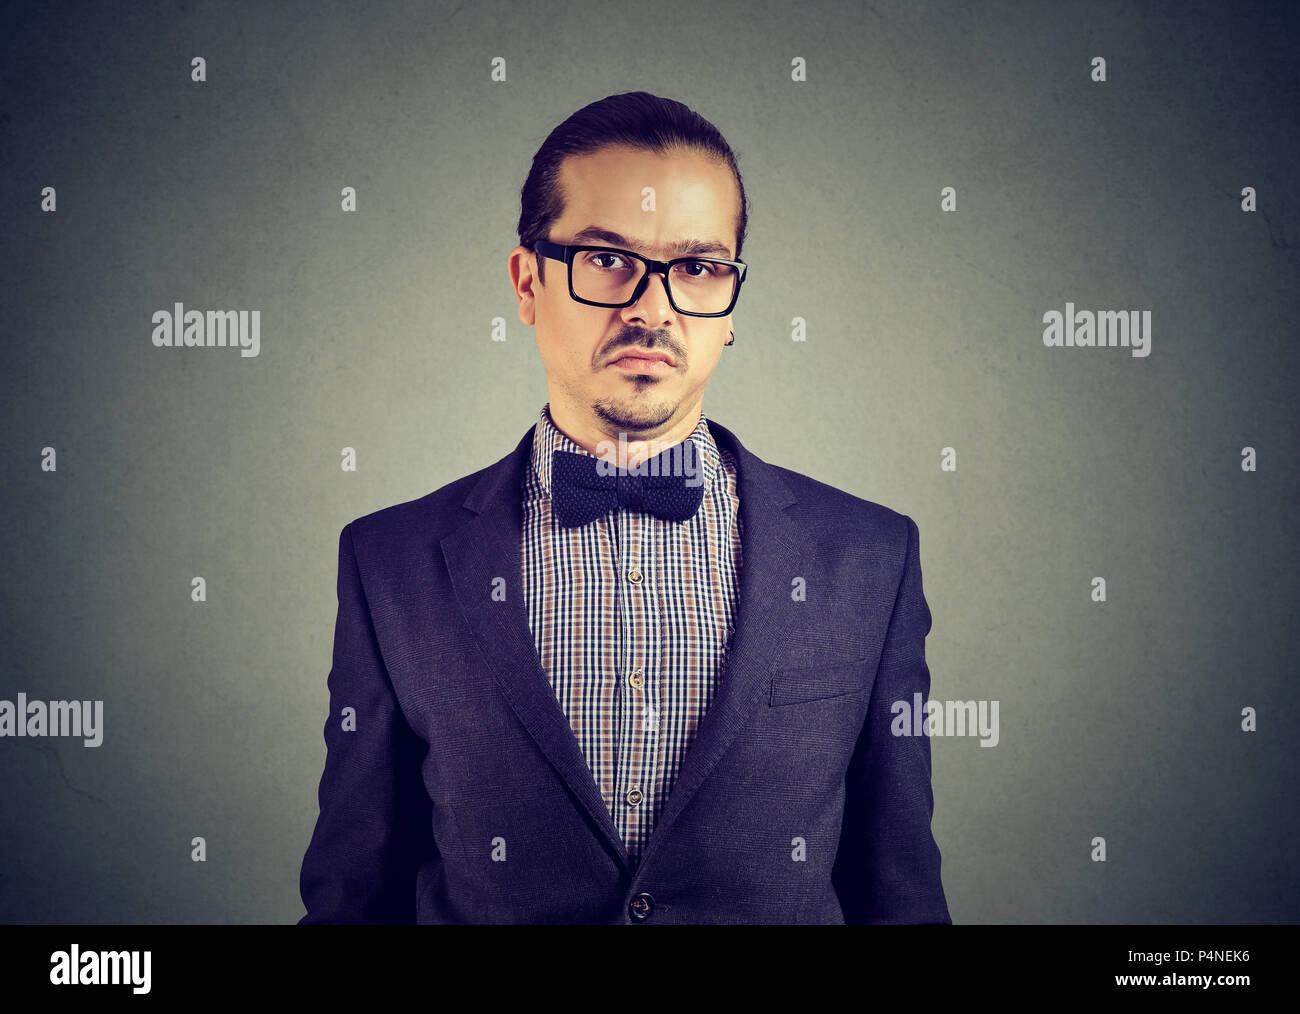 Young elegant man in glasses looking skeptically at camera full of doubts on gray background - Stock Image